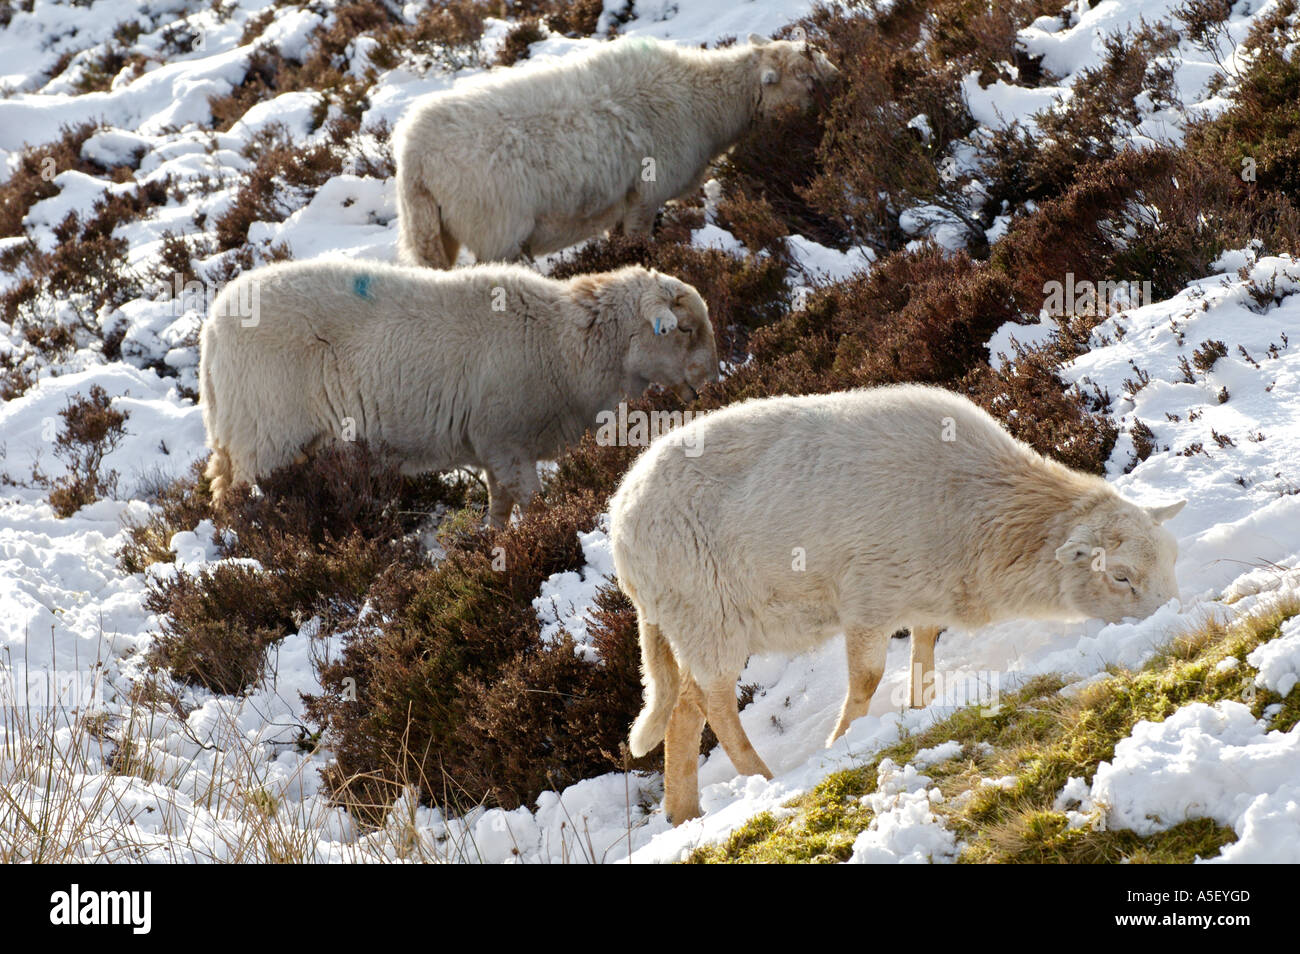 Sheep foraging for food under snow in Brecon Beacons National Park Blaenavon Wales UK - Stock Image